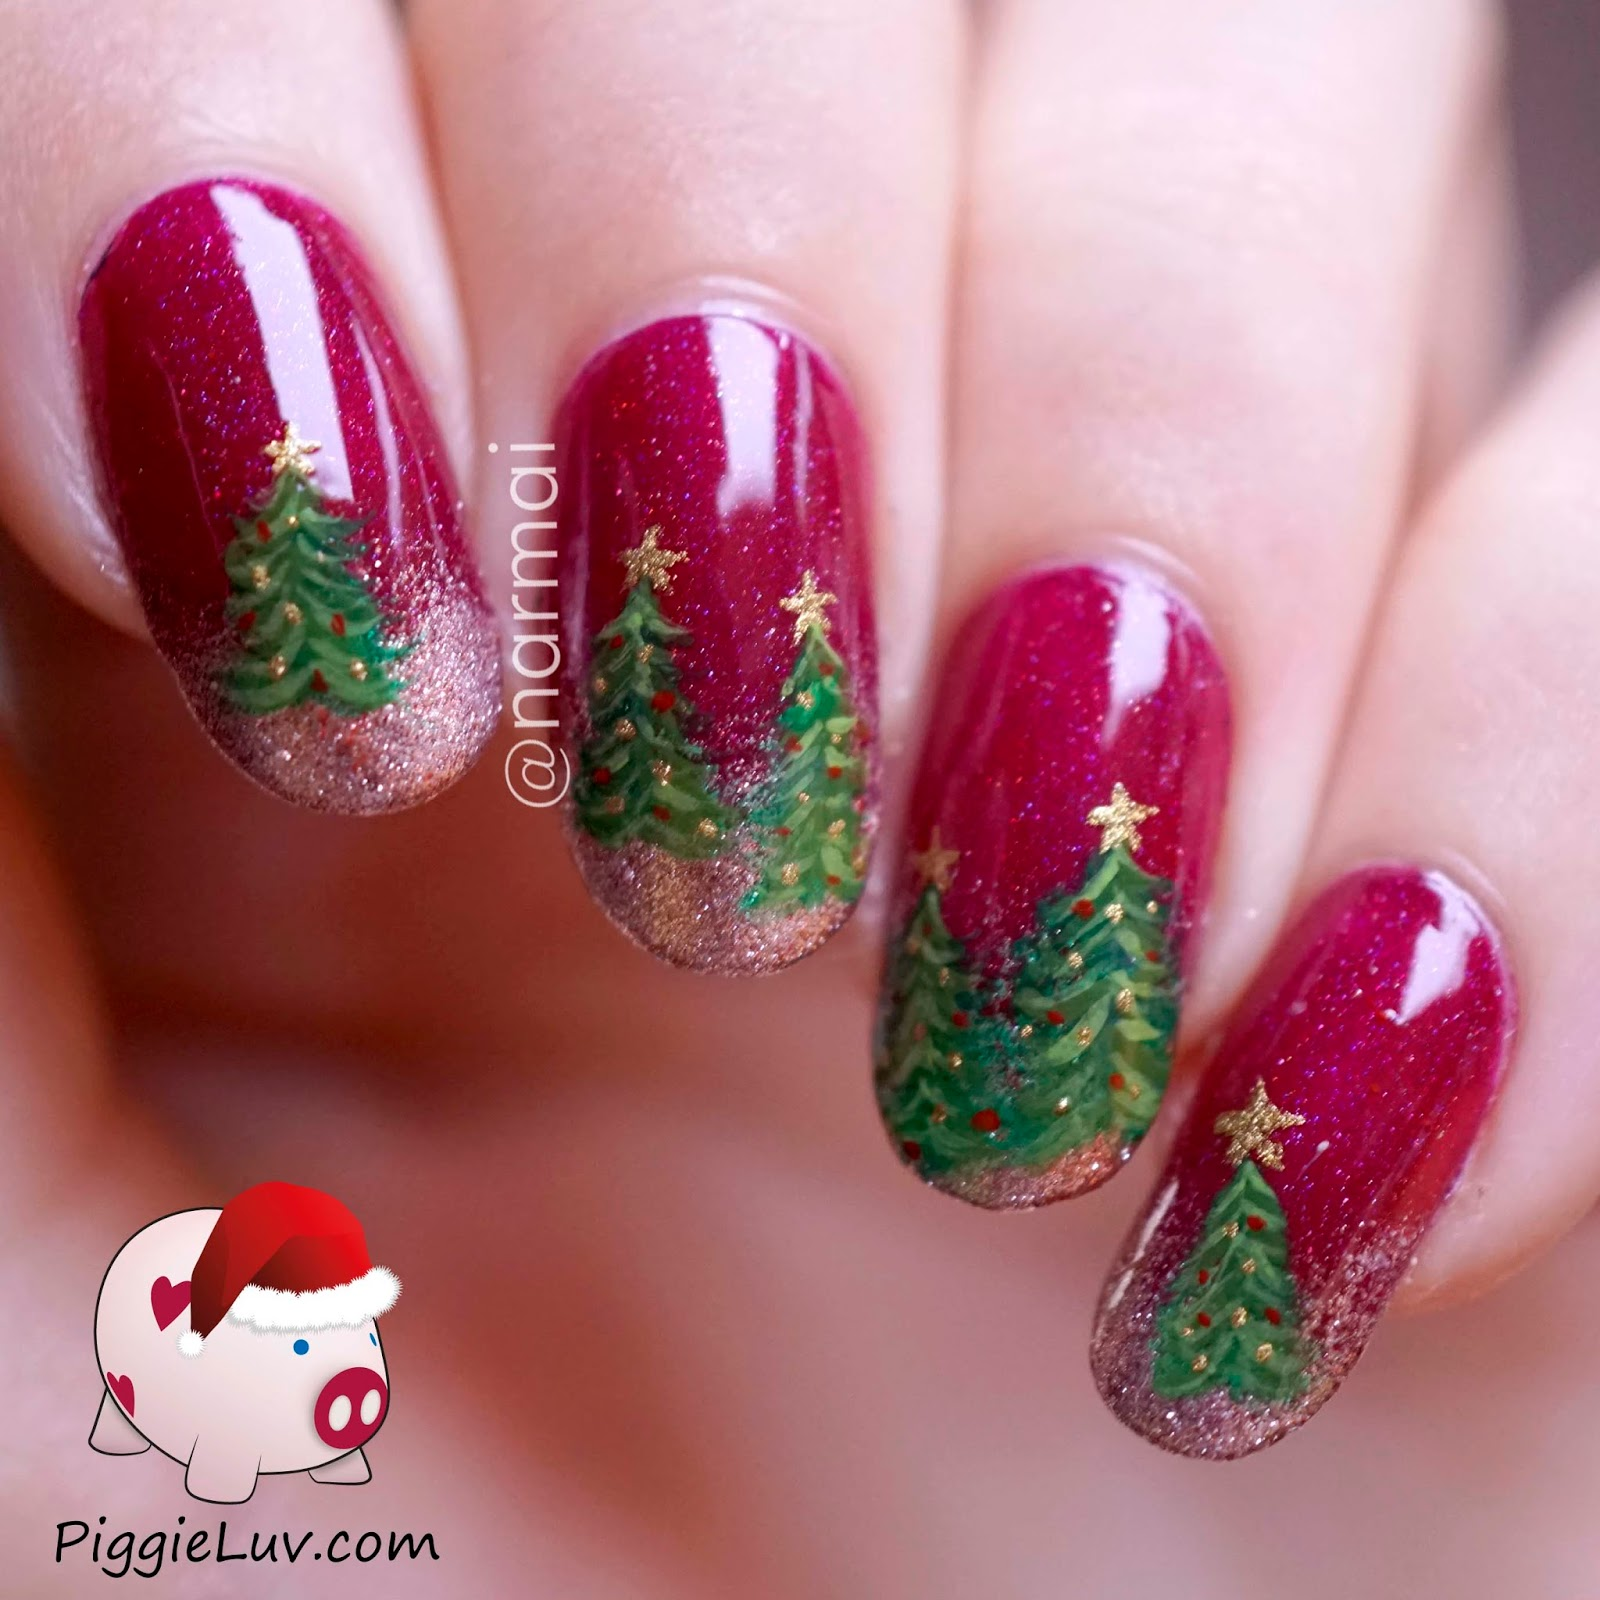 PiggieLuv: Christmas trees nail art